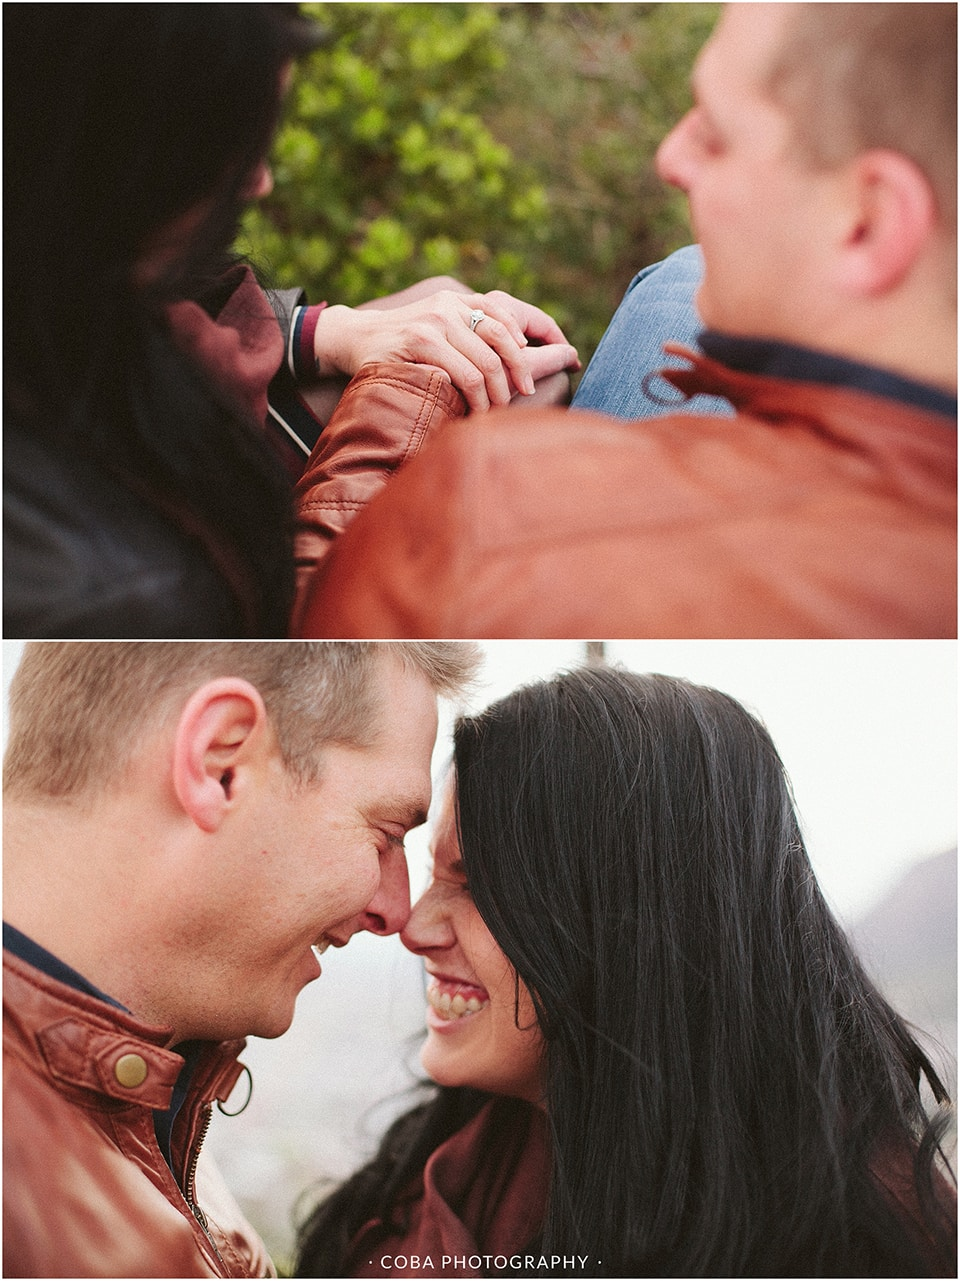 Martin & Yolande - Engaged - Photographer Cape Town (4)